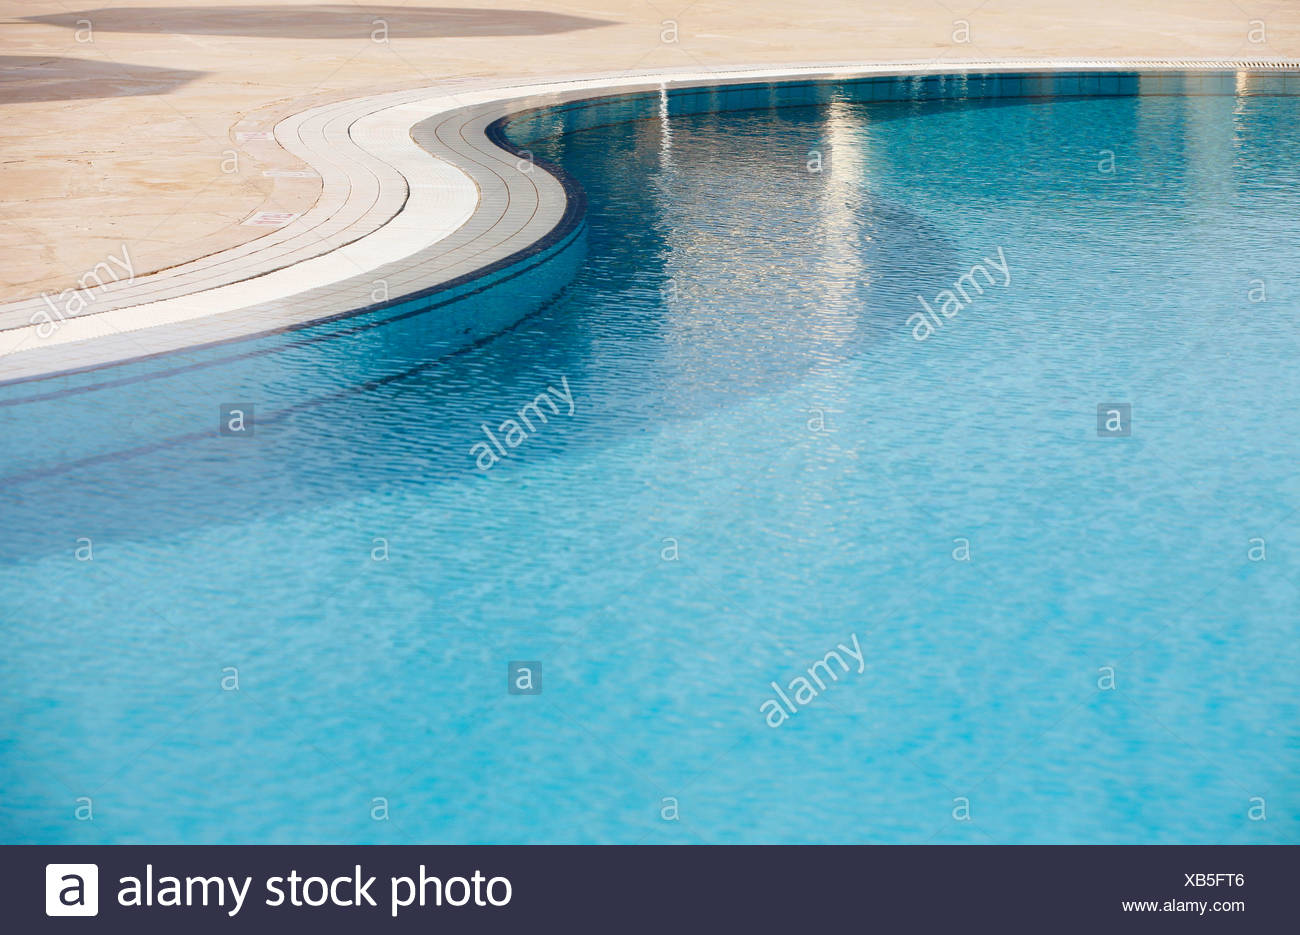 Rippled water surface in a swimming pool, detail, blue with steps below the surface - Stock Image